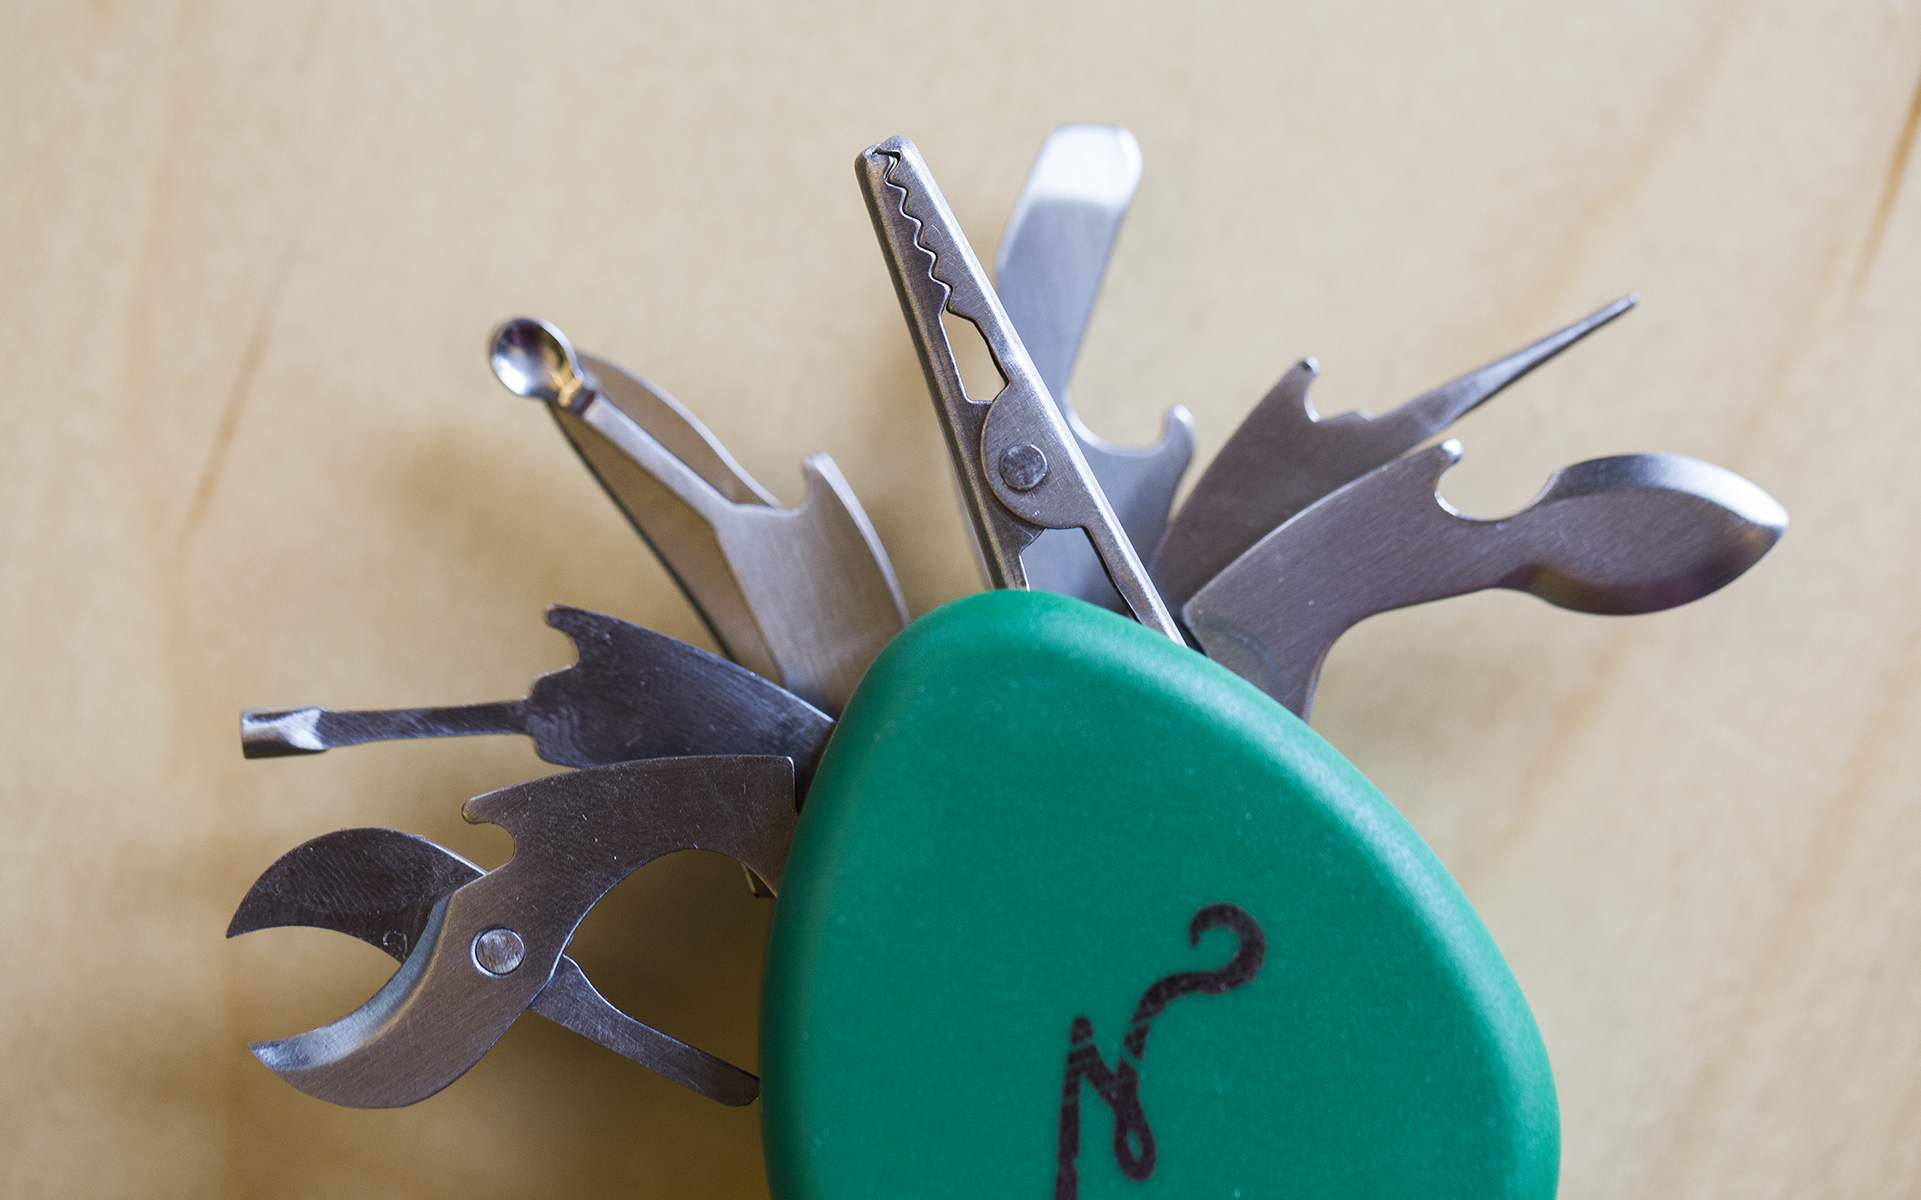 Product Review: The Nuggy Multi-Tool